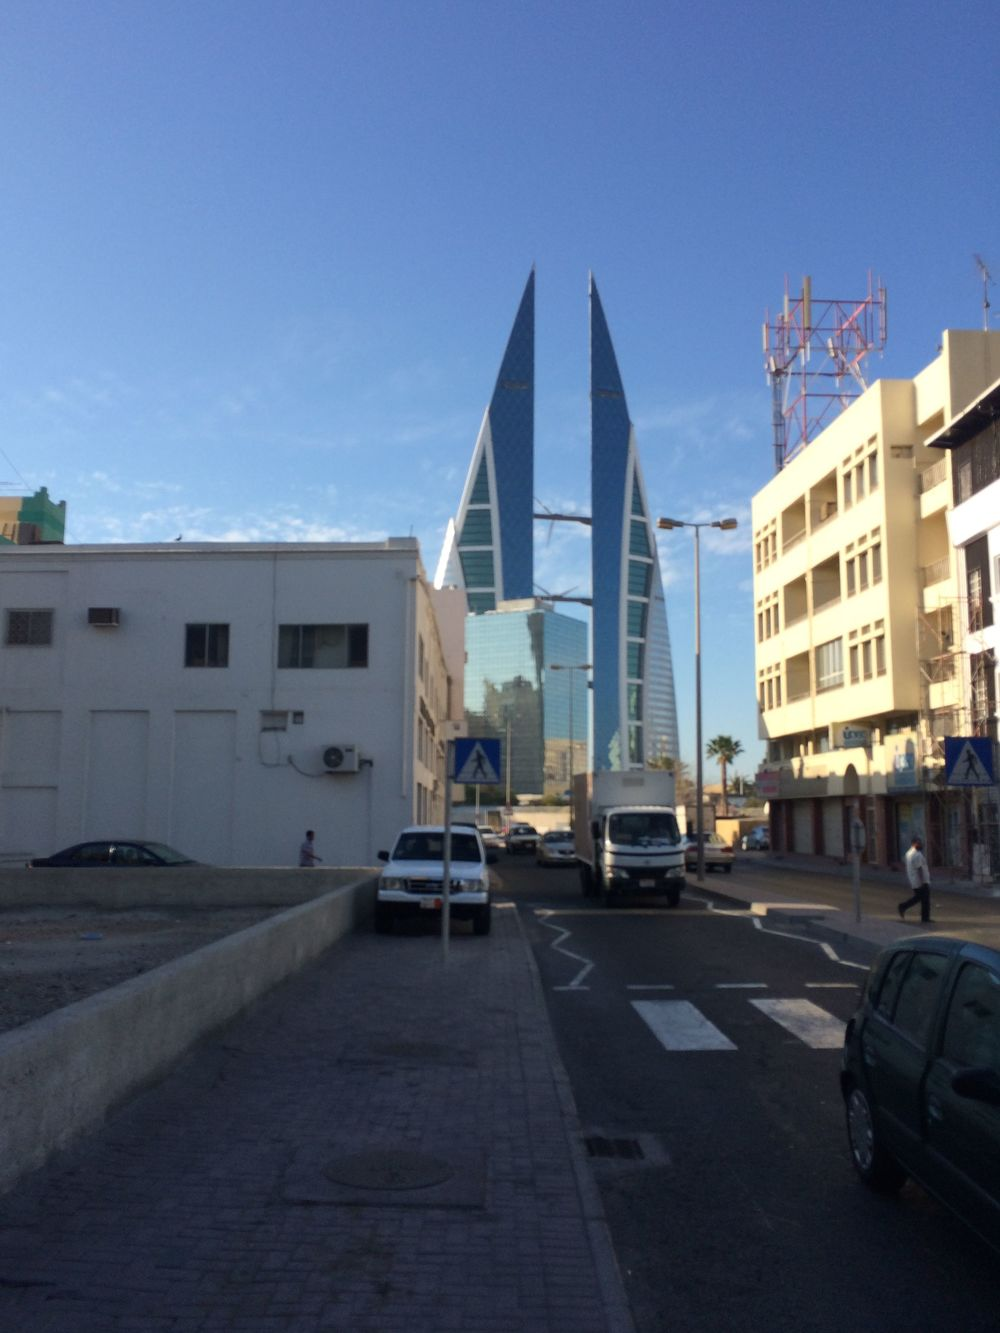 Bahrain World Trade Center, with its wind turbines, just down the block from the neighborhood souq. Also, look! Sidewalks, and they're relatively clean!